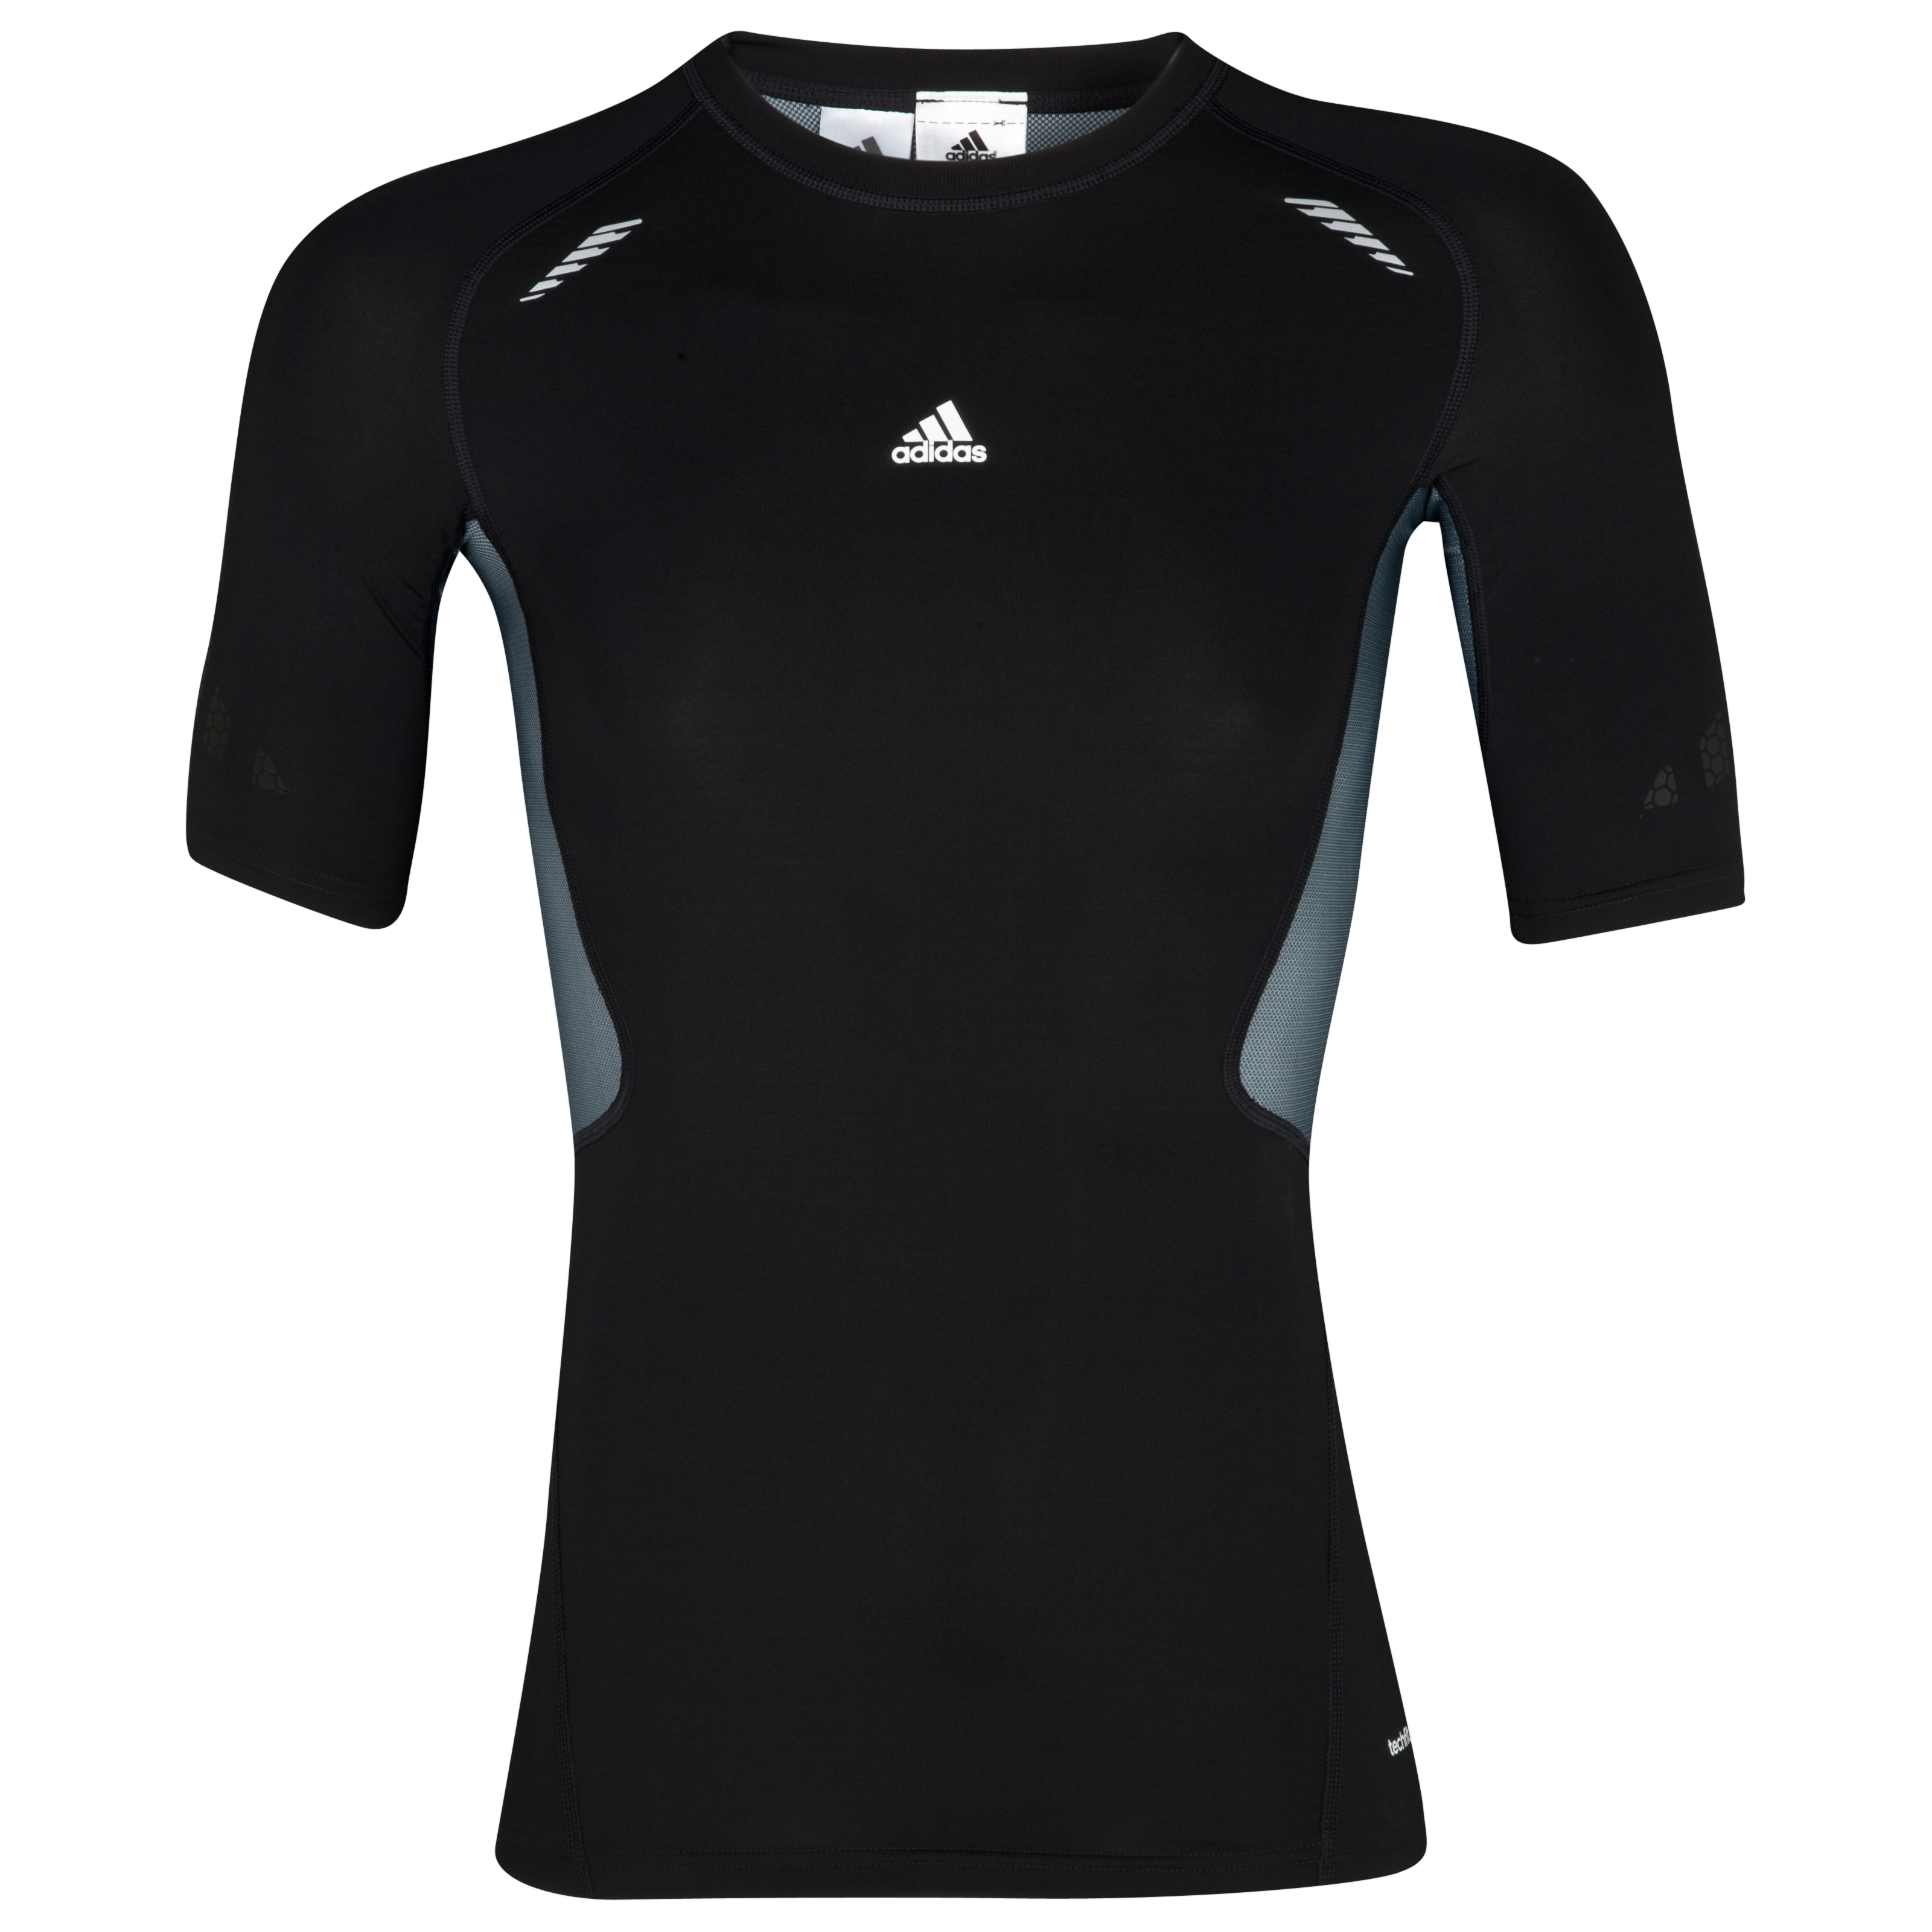 Adidas TechFit Preperation Top - Short Sleeve - Black